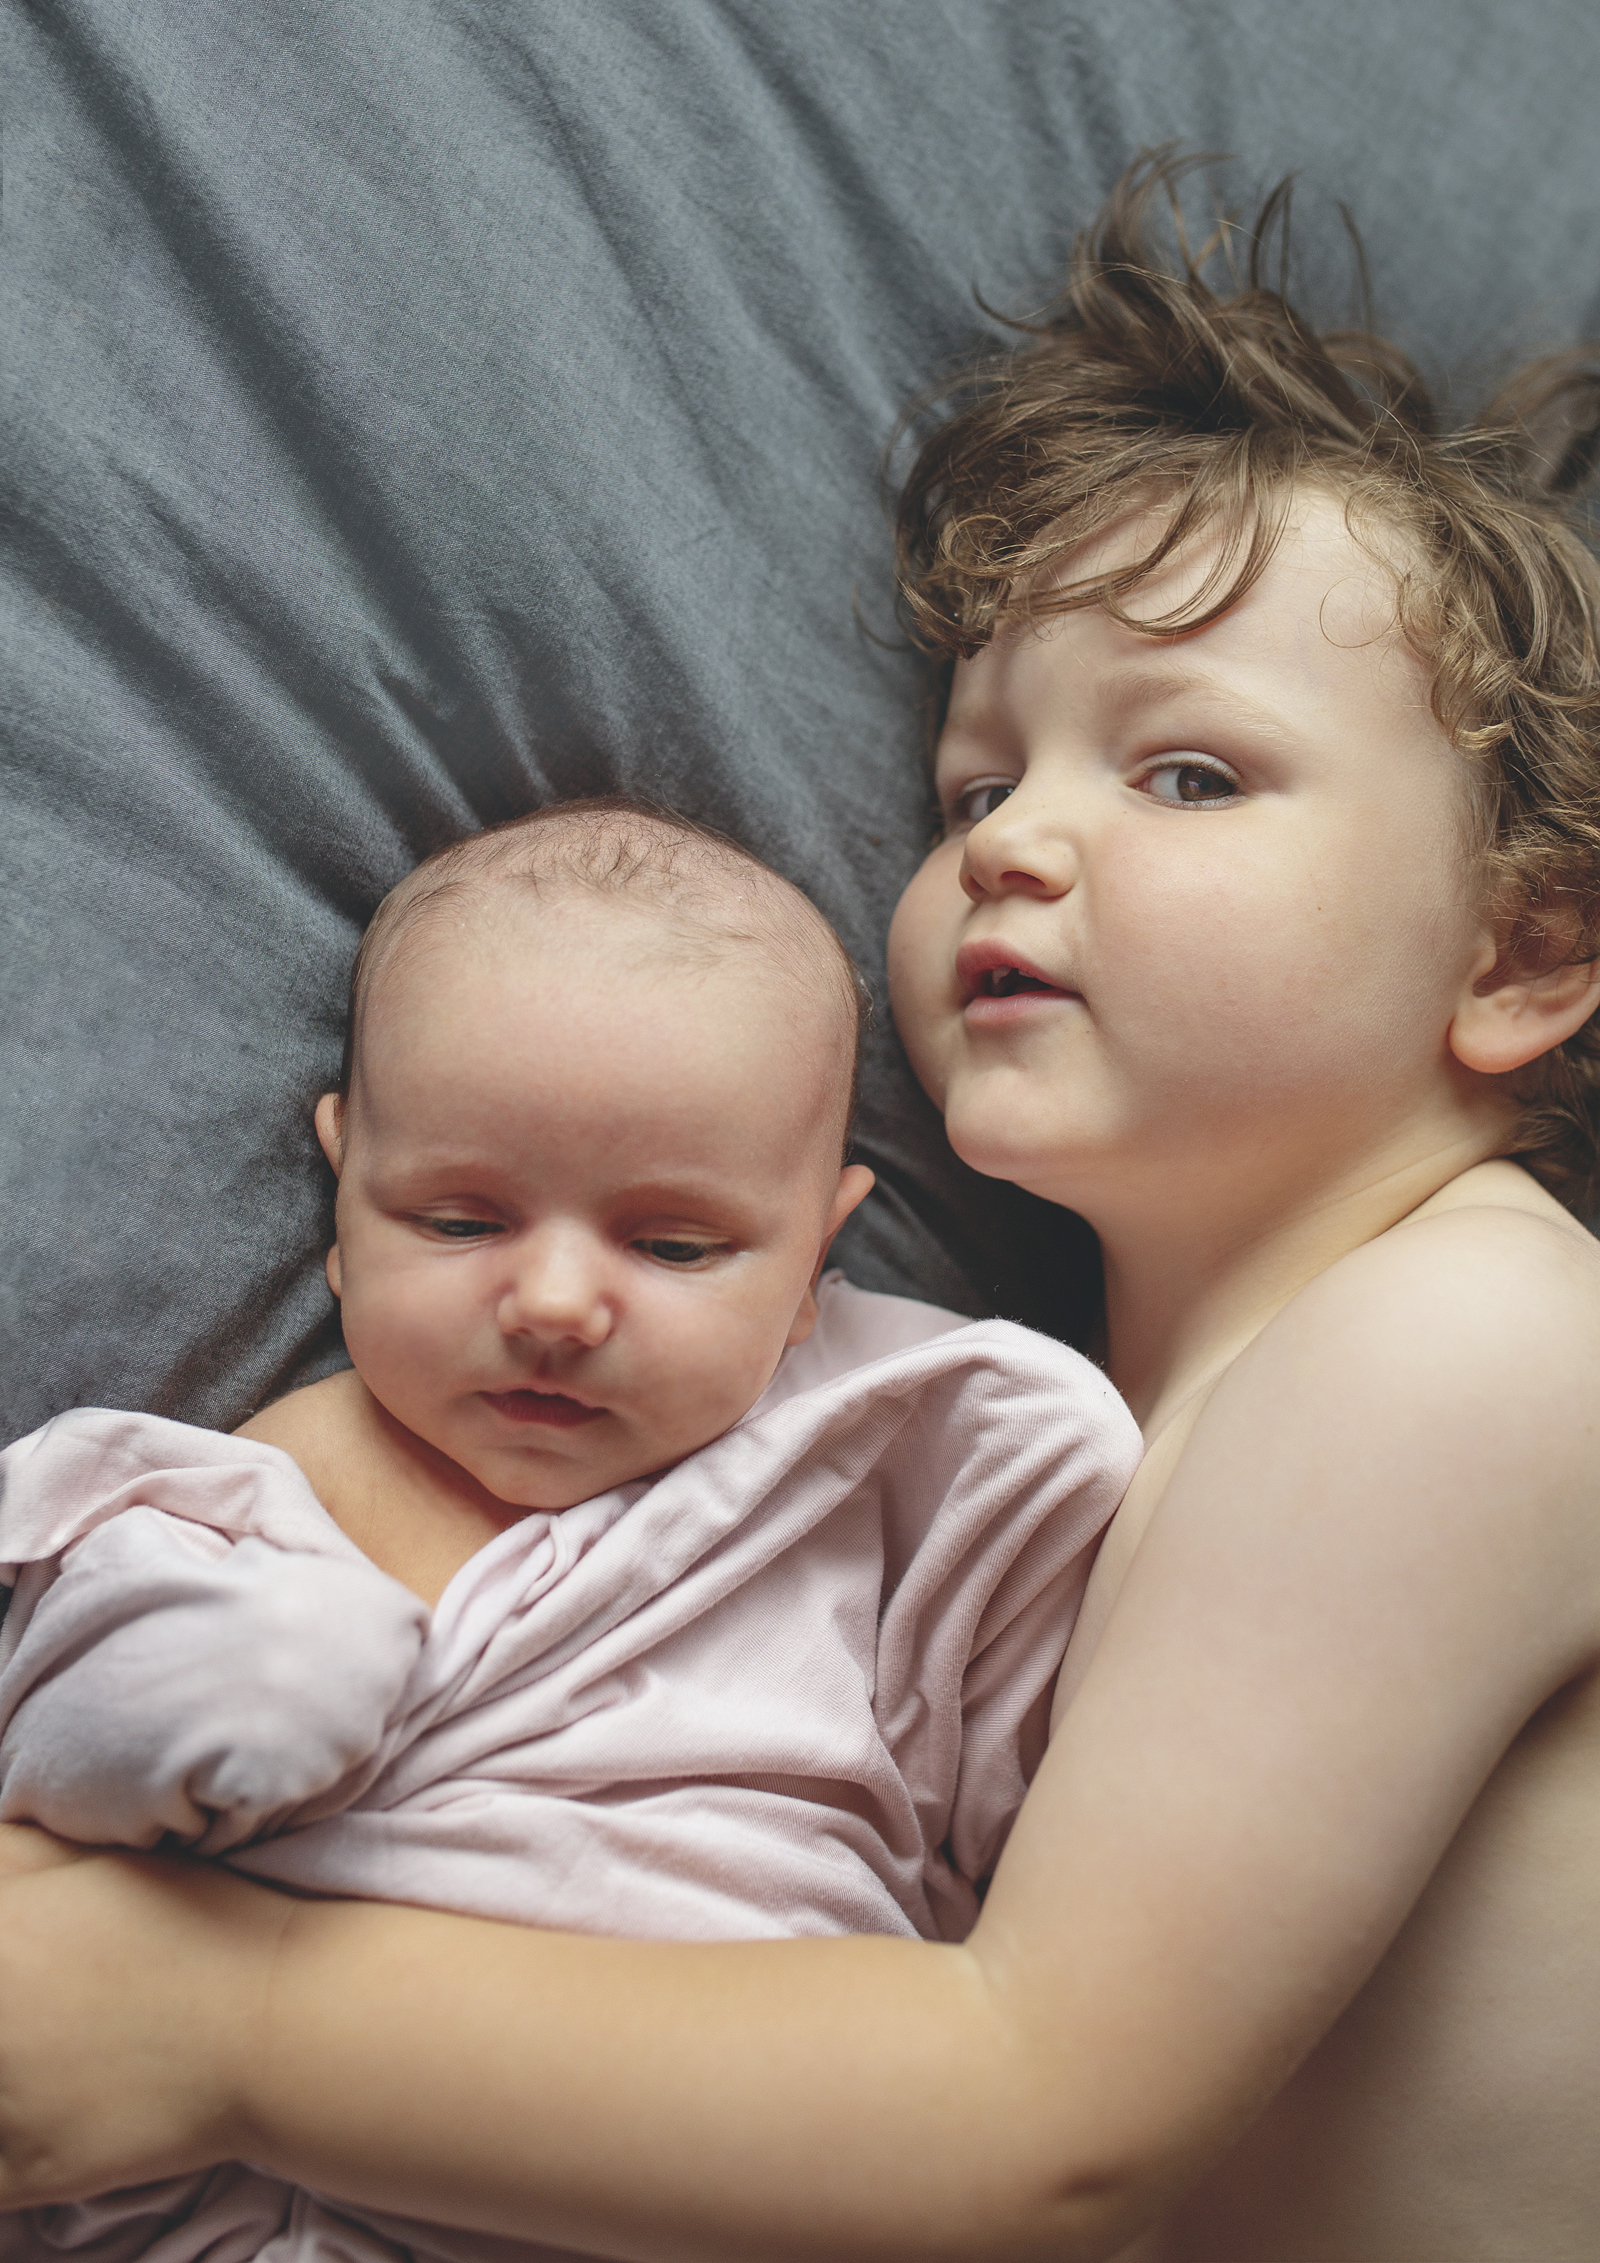 Big brother loves his baby sister